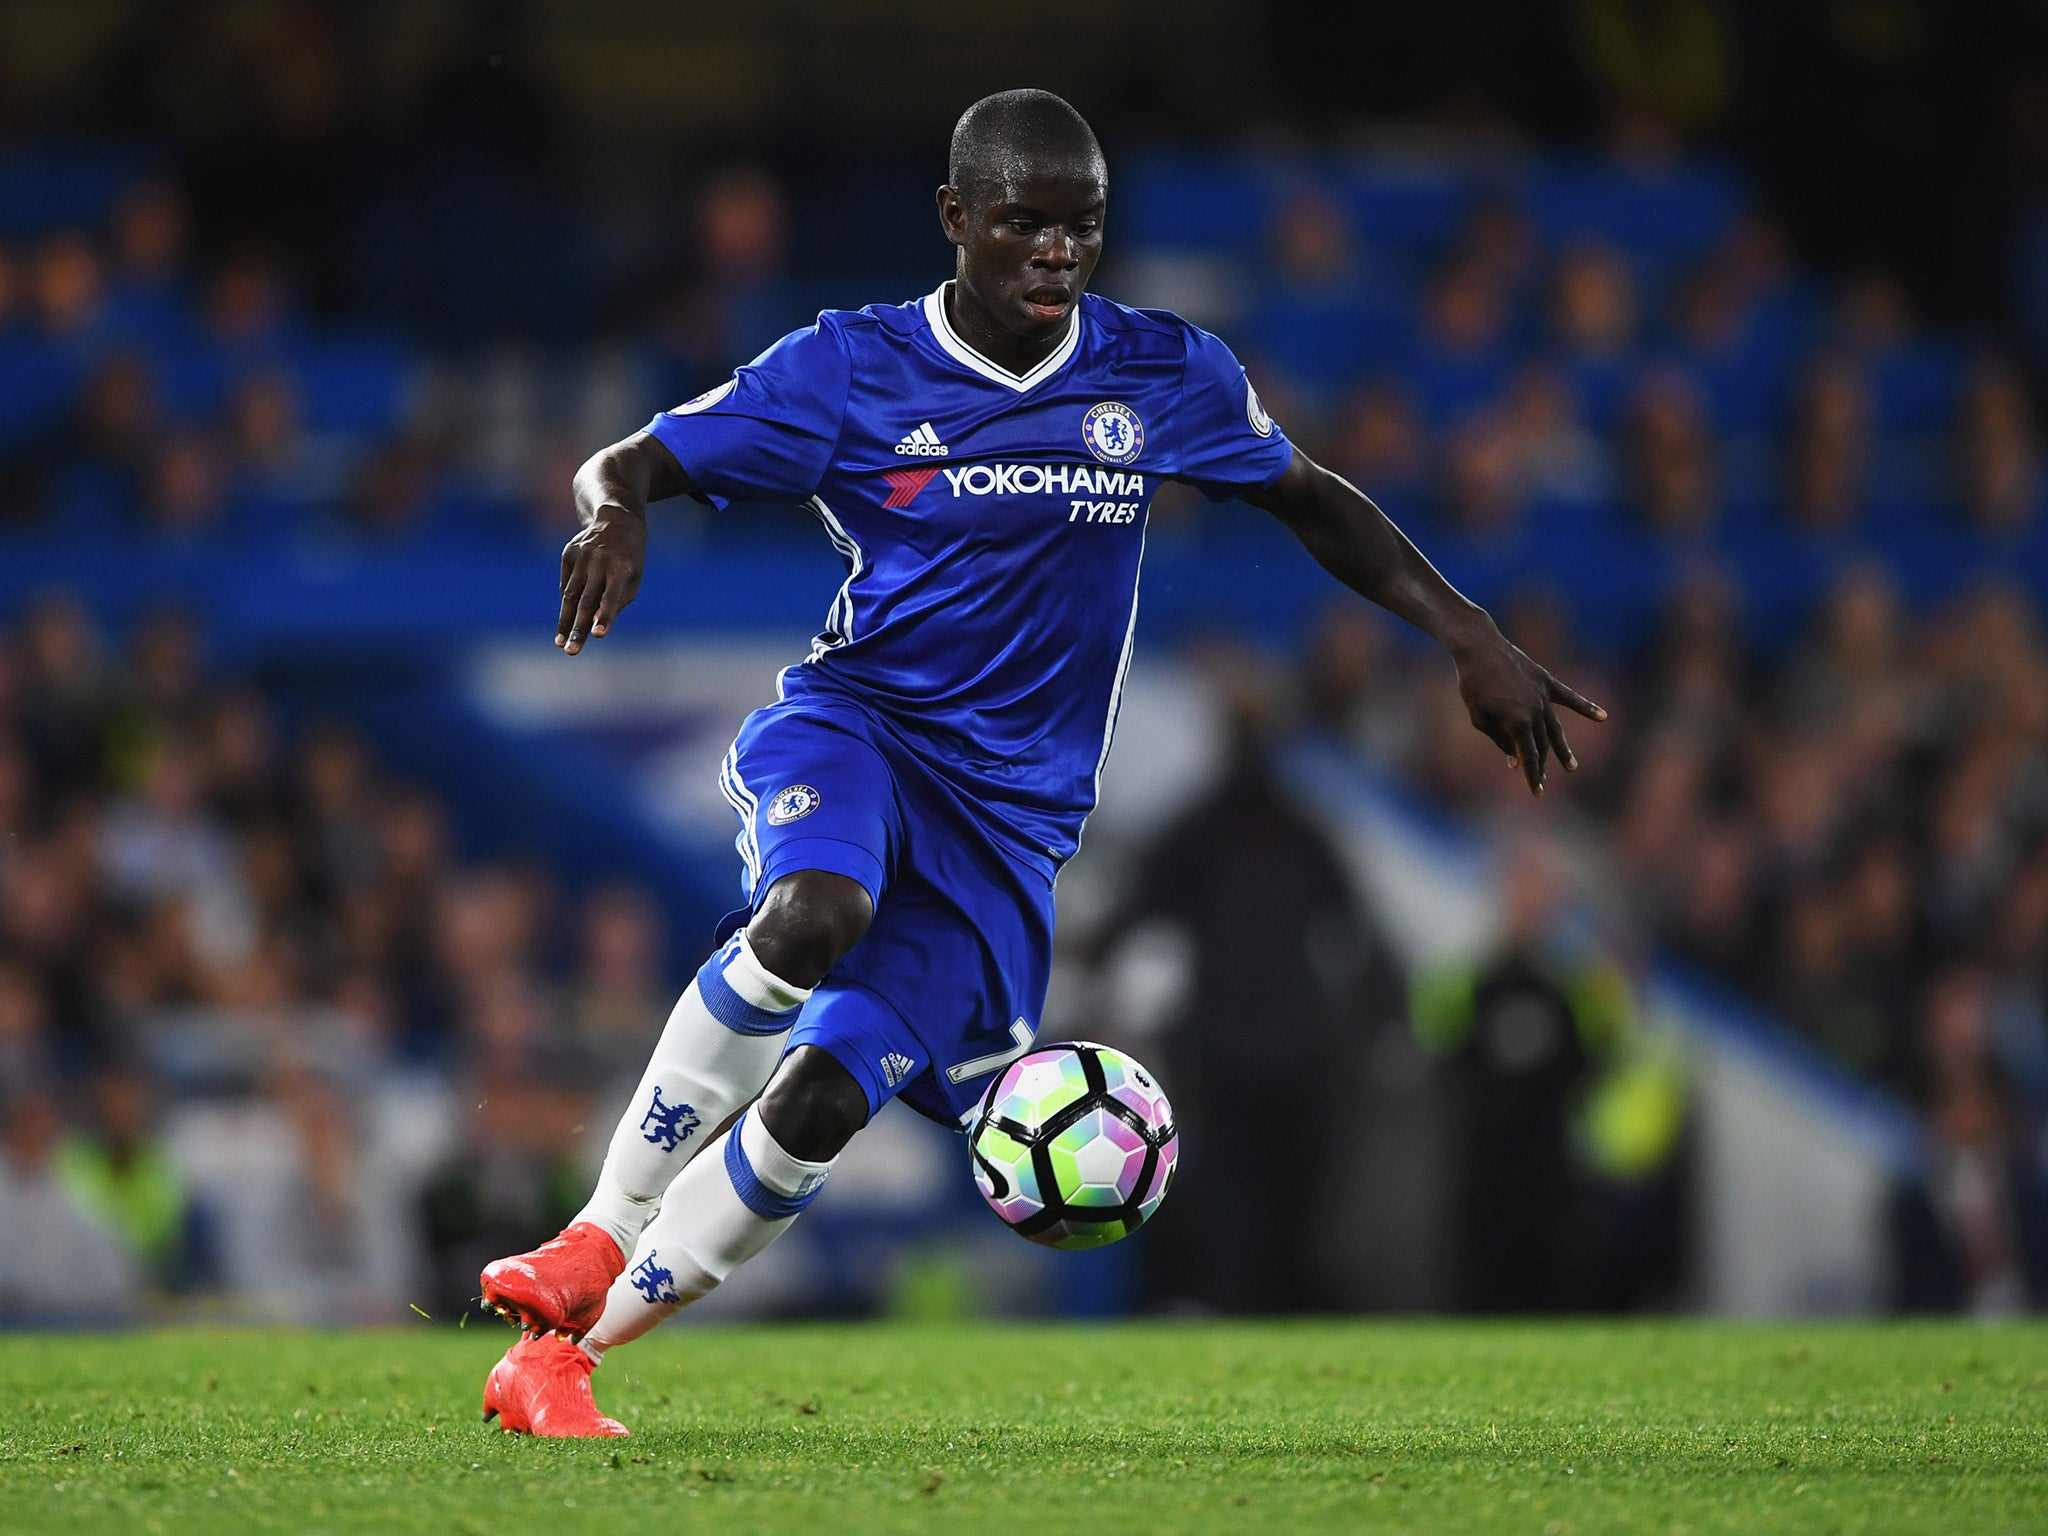 https://static.independent.co.uk/s3fs-public/thumbnails/image/2016/10/14/16/ngolo-kante.jpg